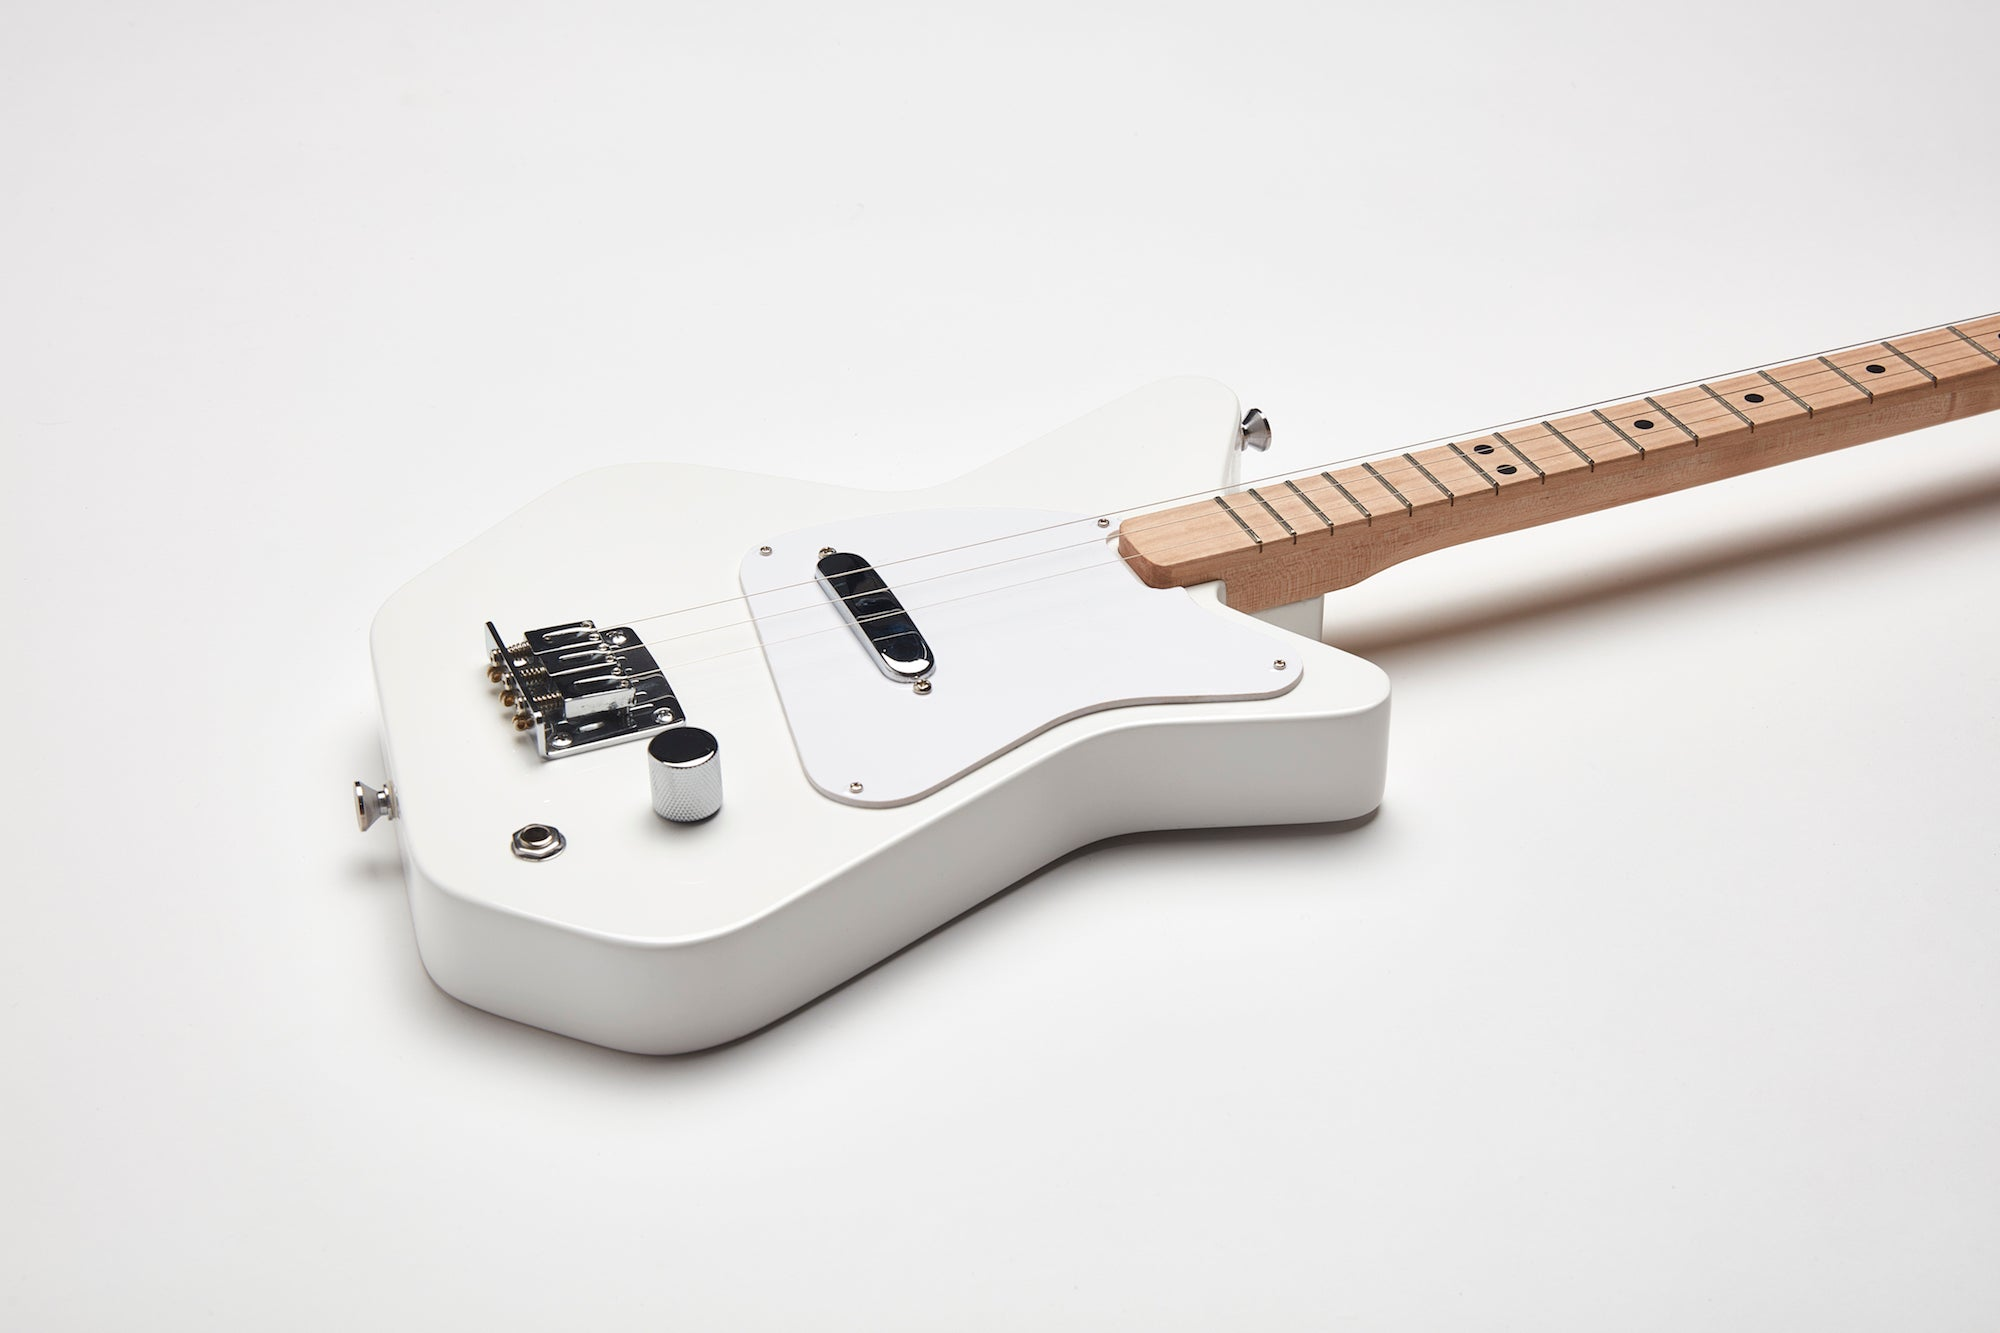 Loog Pro Electric guitar for kids - White - Detail